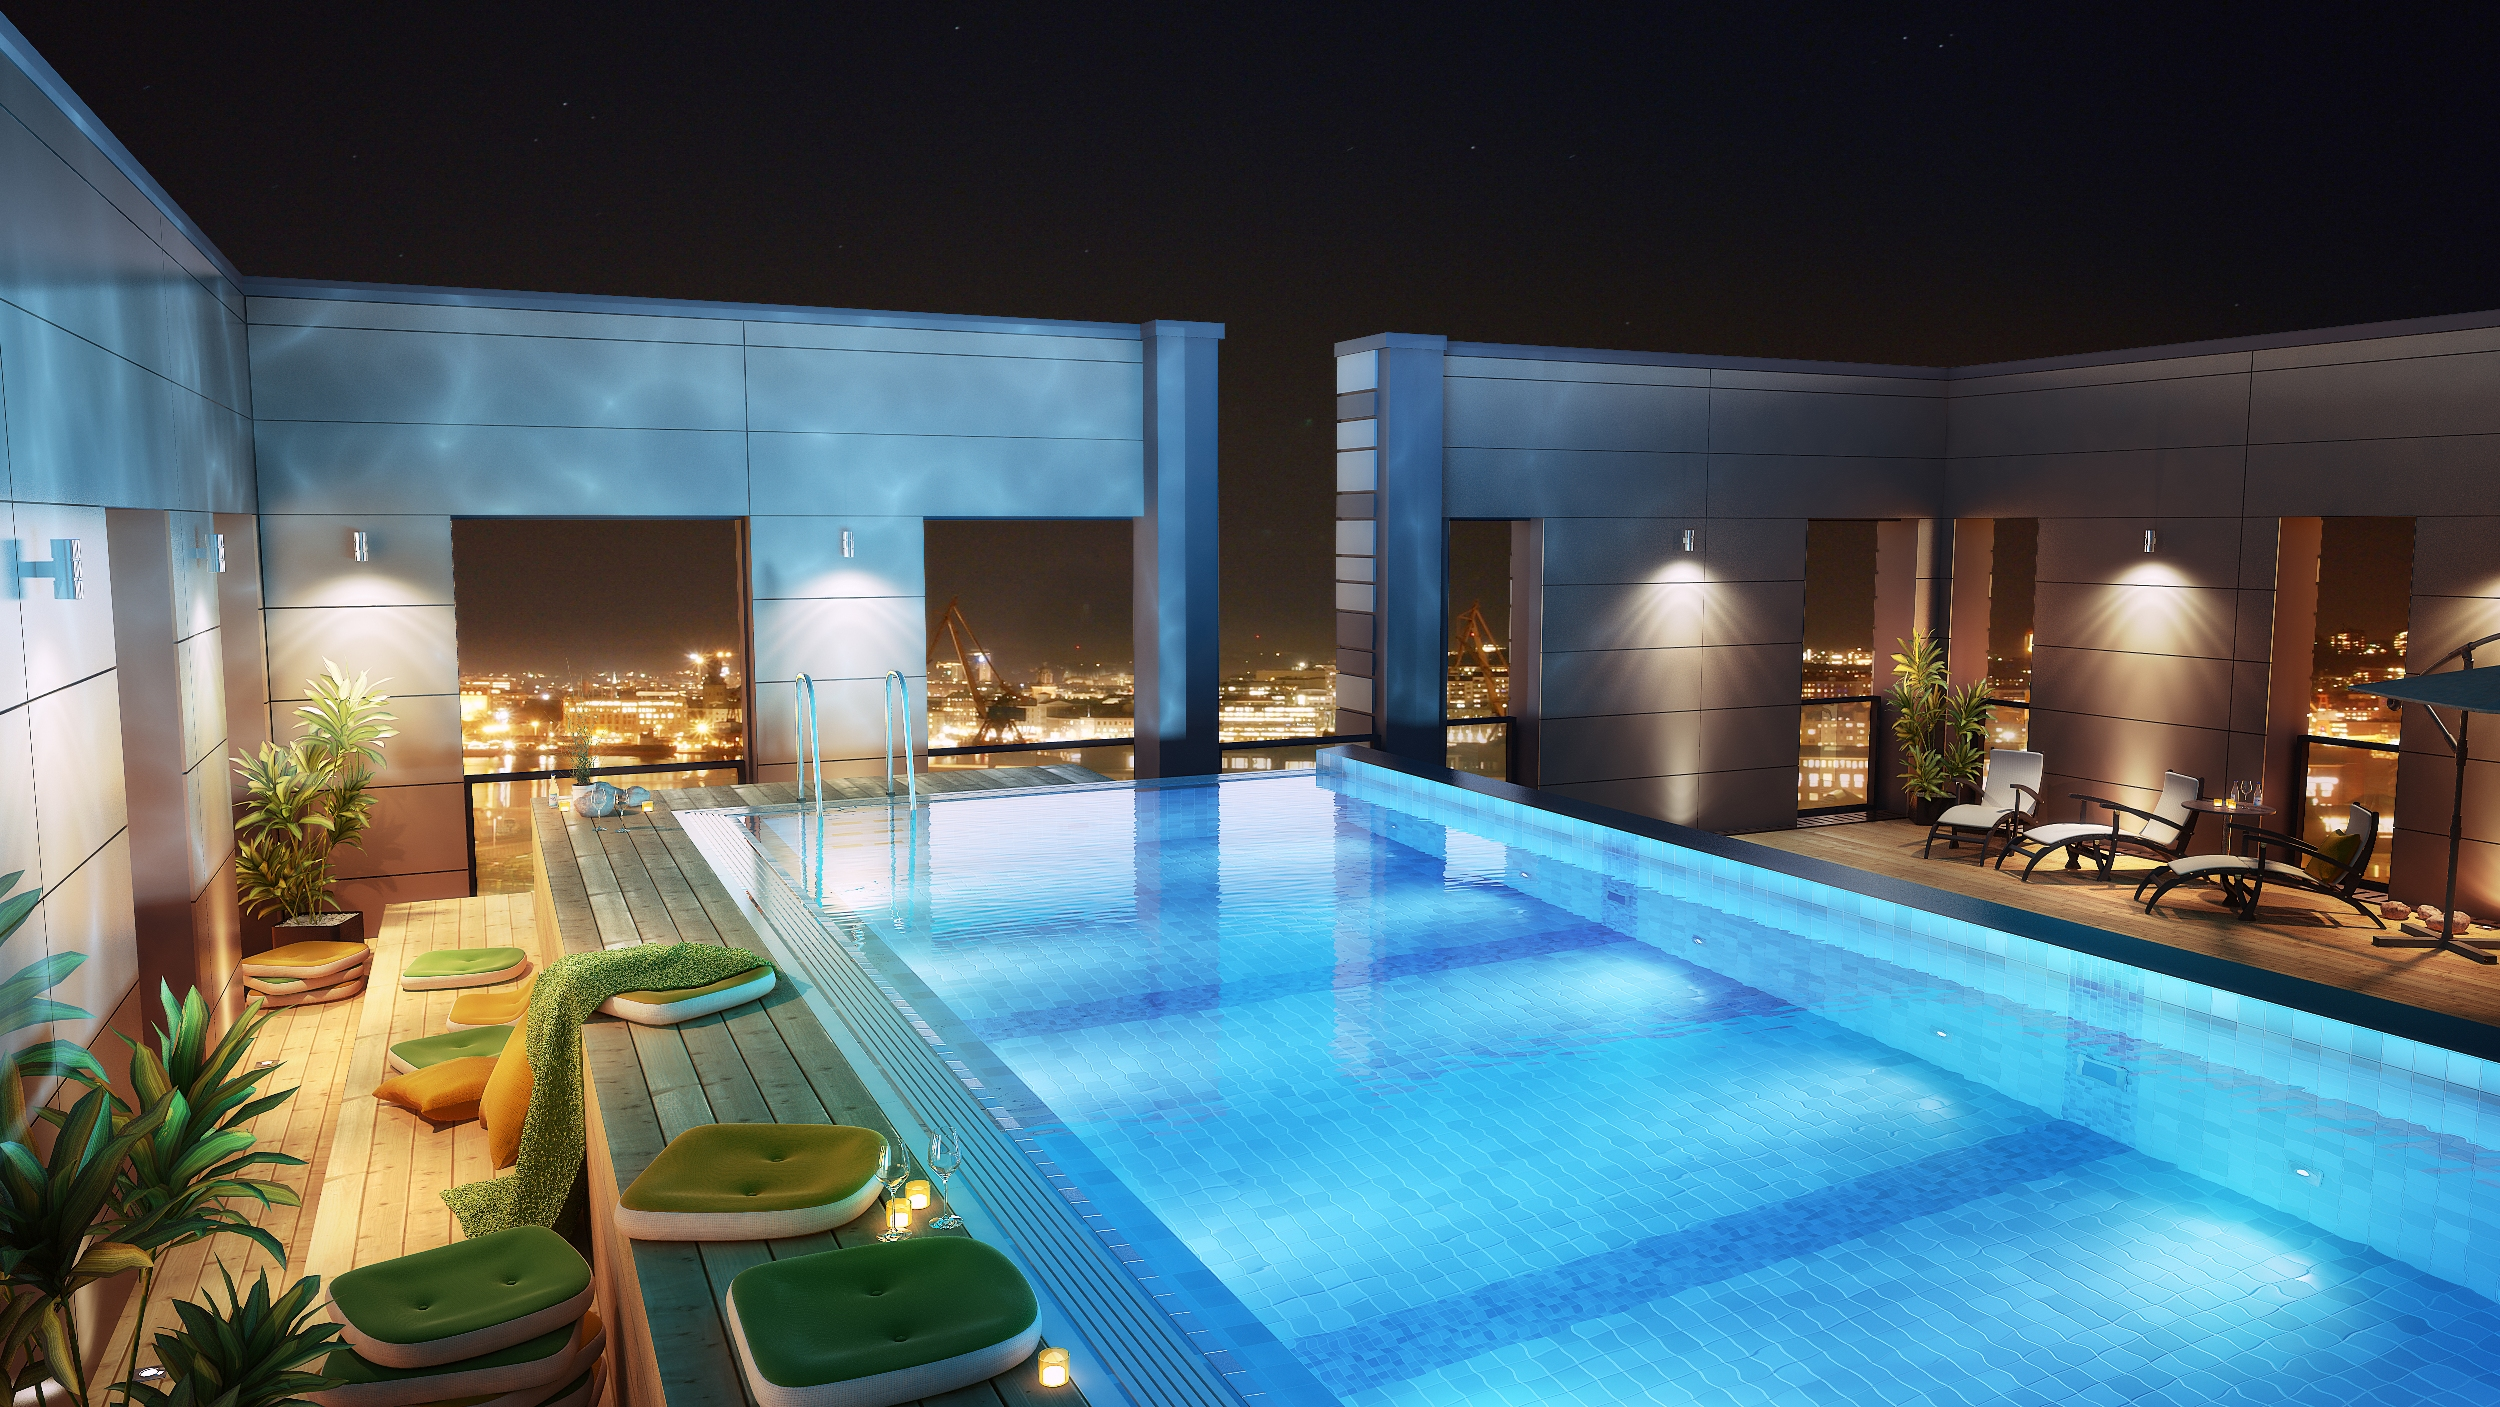 Ten of the best rooftop hotel pools aol travel uk for Rooftop swimming pool designing and planning